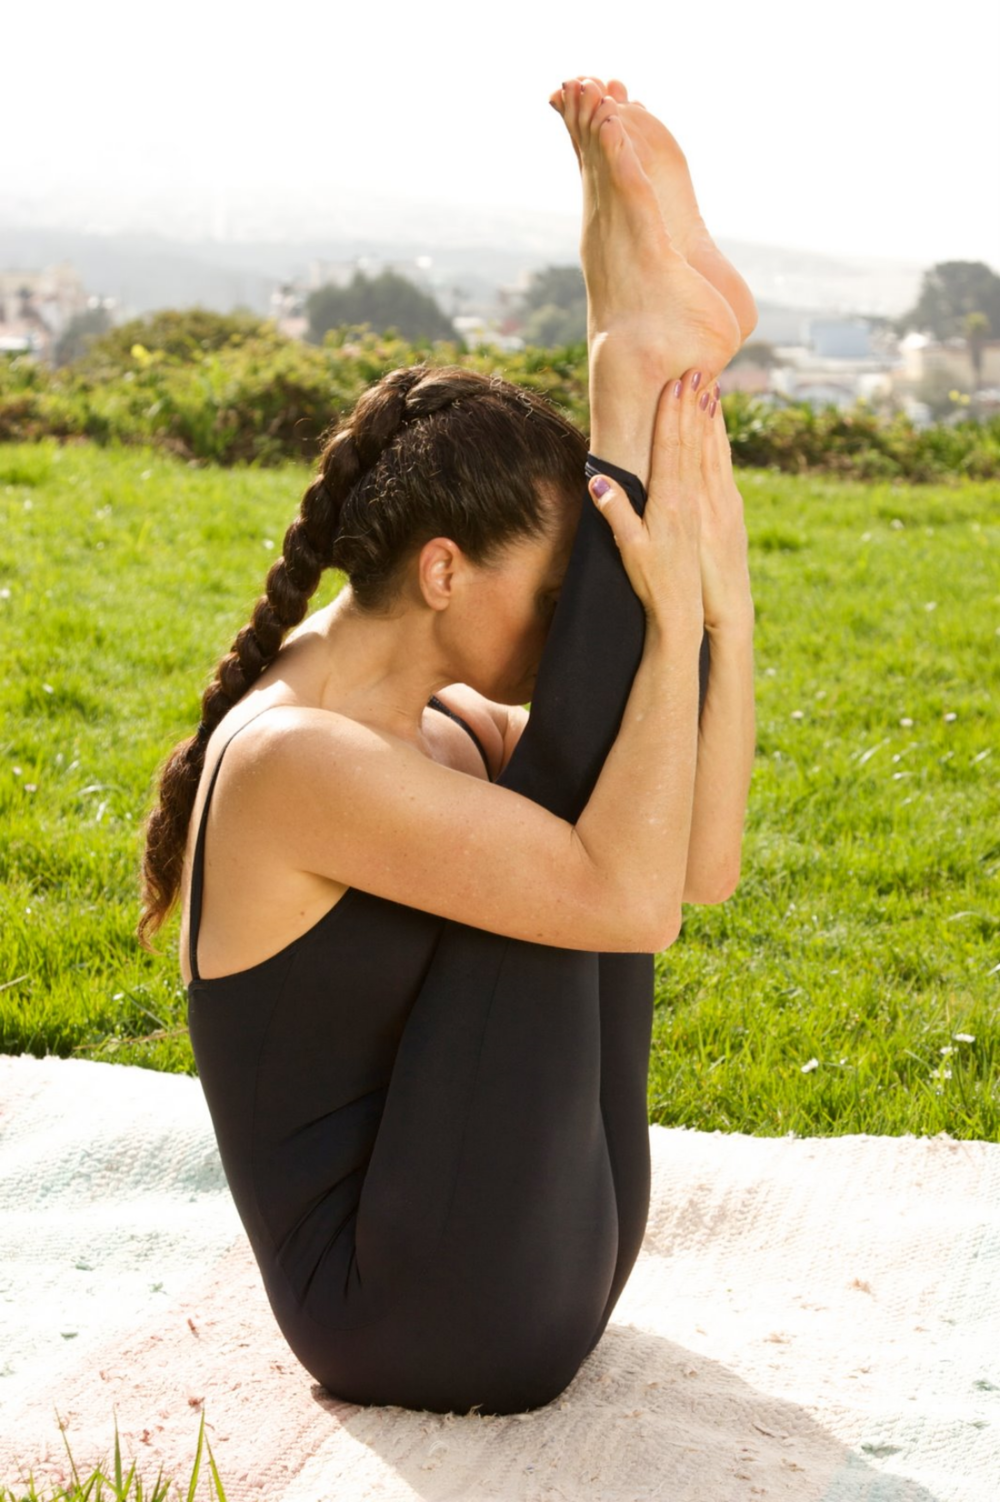 YOGA ABOVE THE BEACH - West Fort Miley, San Francisco, CA